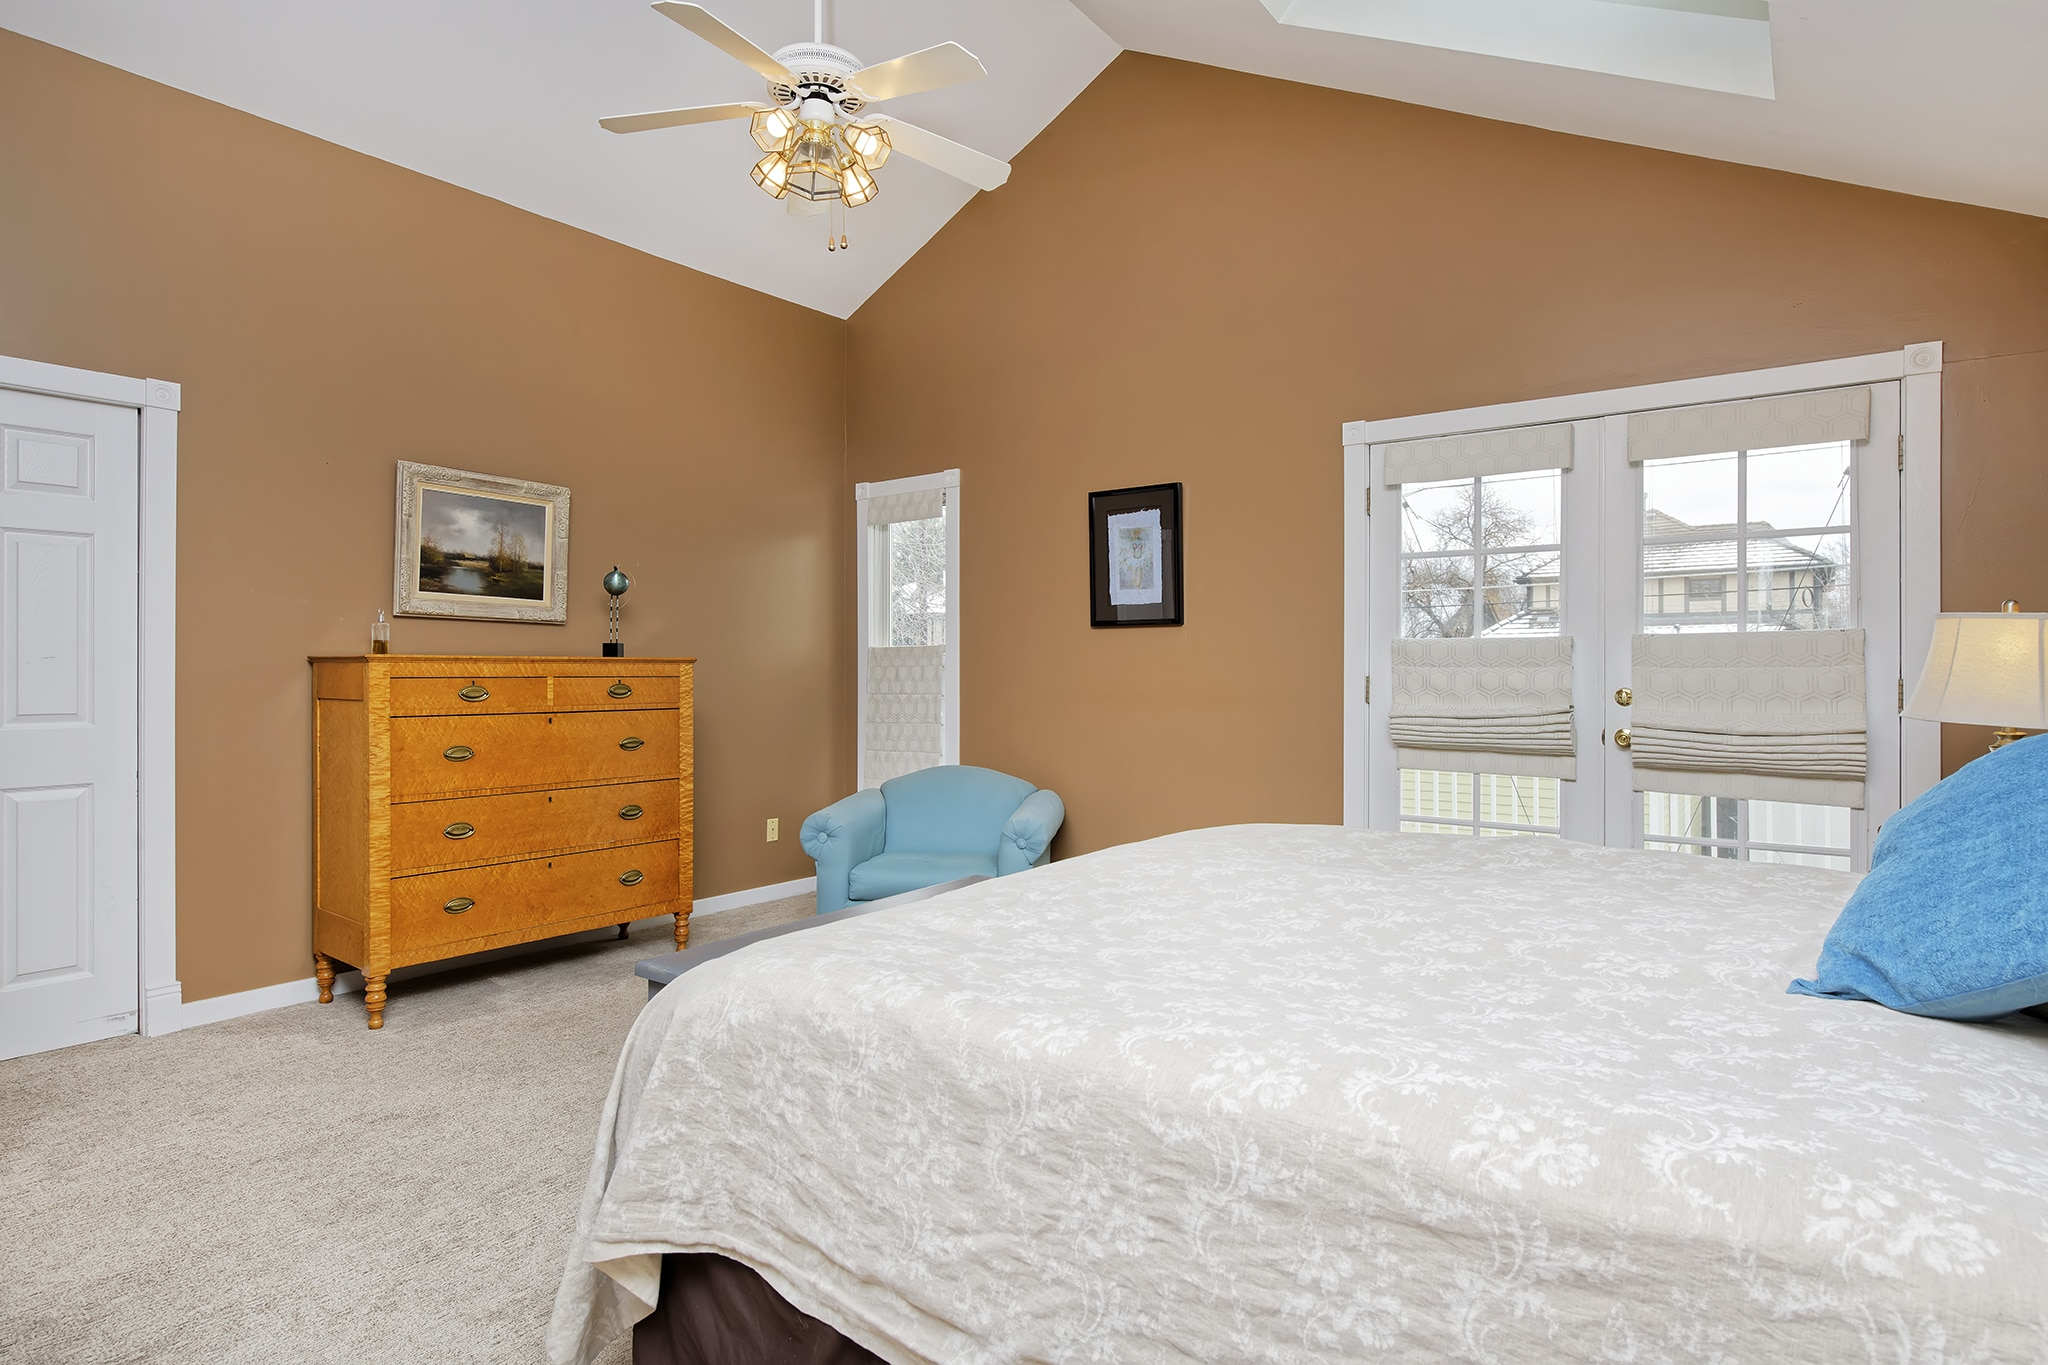 Washington Park Home For Sale With Large Master Bedroom and Skylights